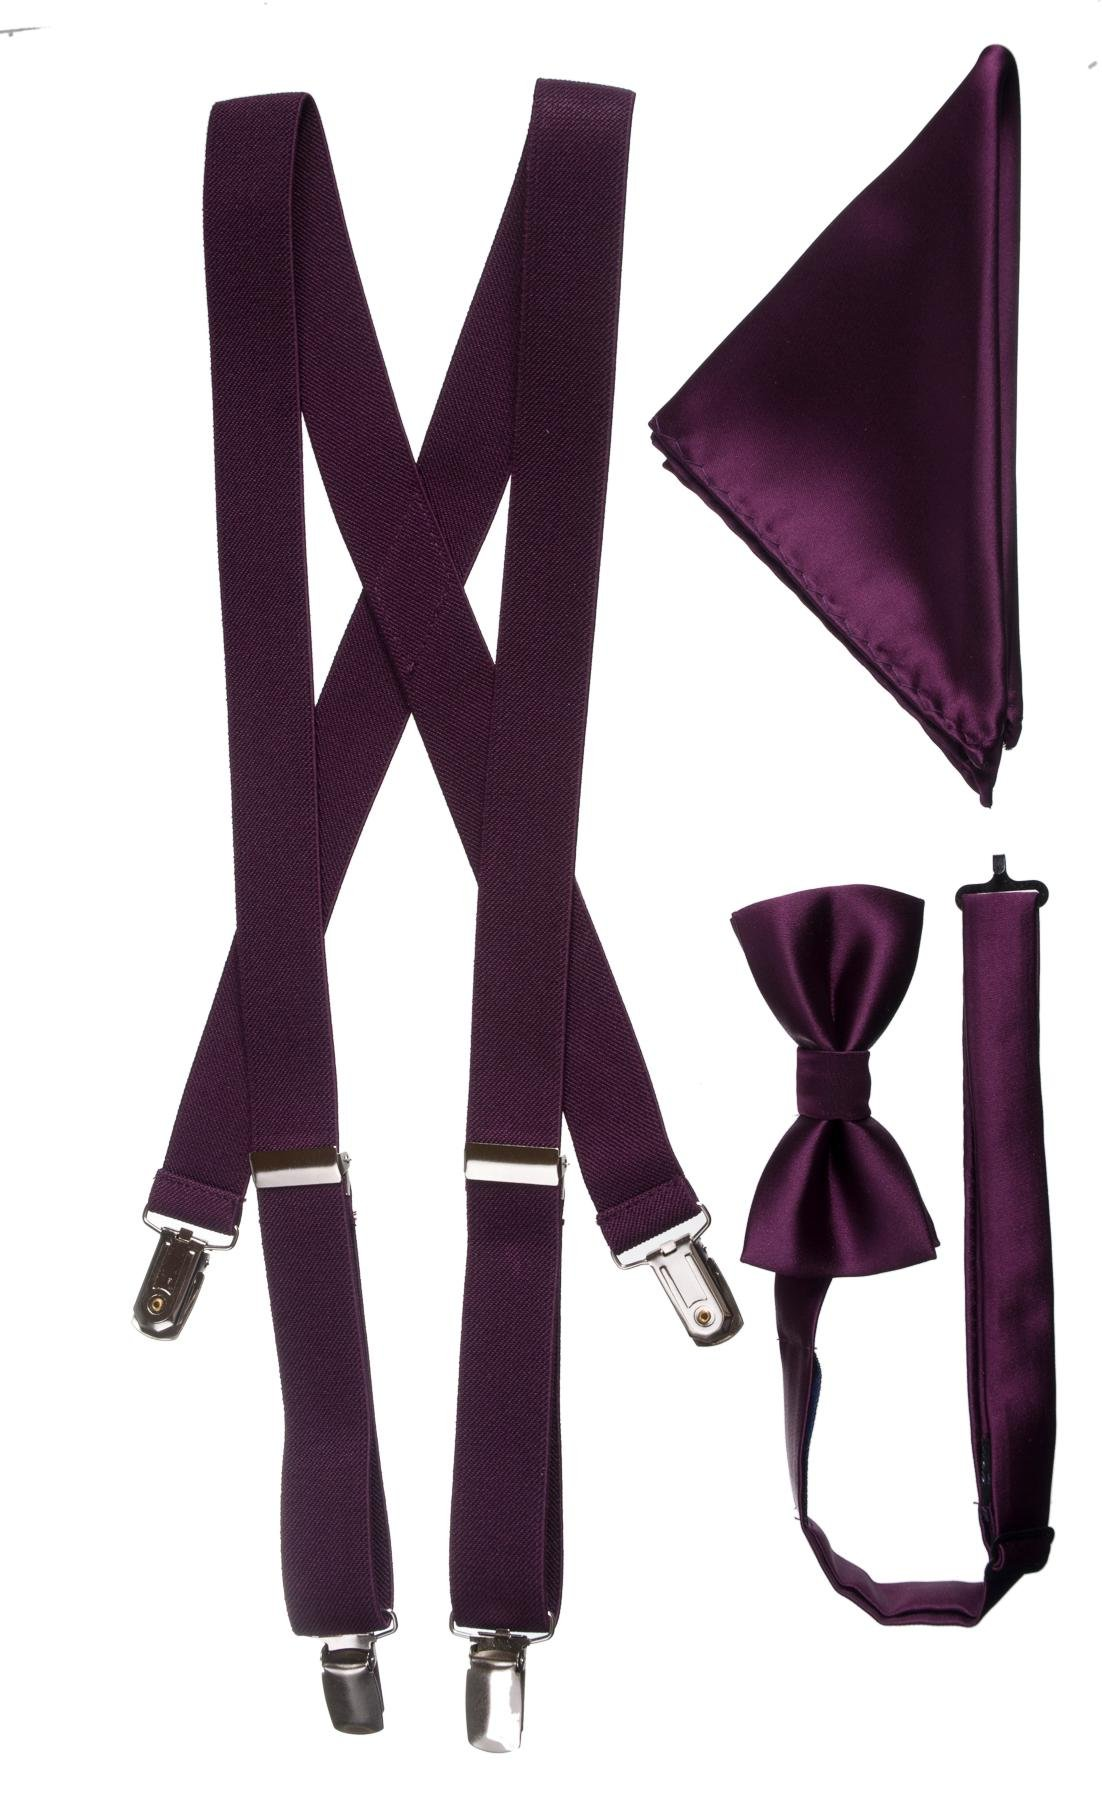 Boys Boxed Suspender and Bow Tie Set with Matching Pocket Square (Plum)